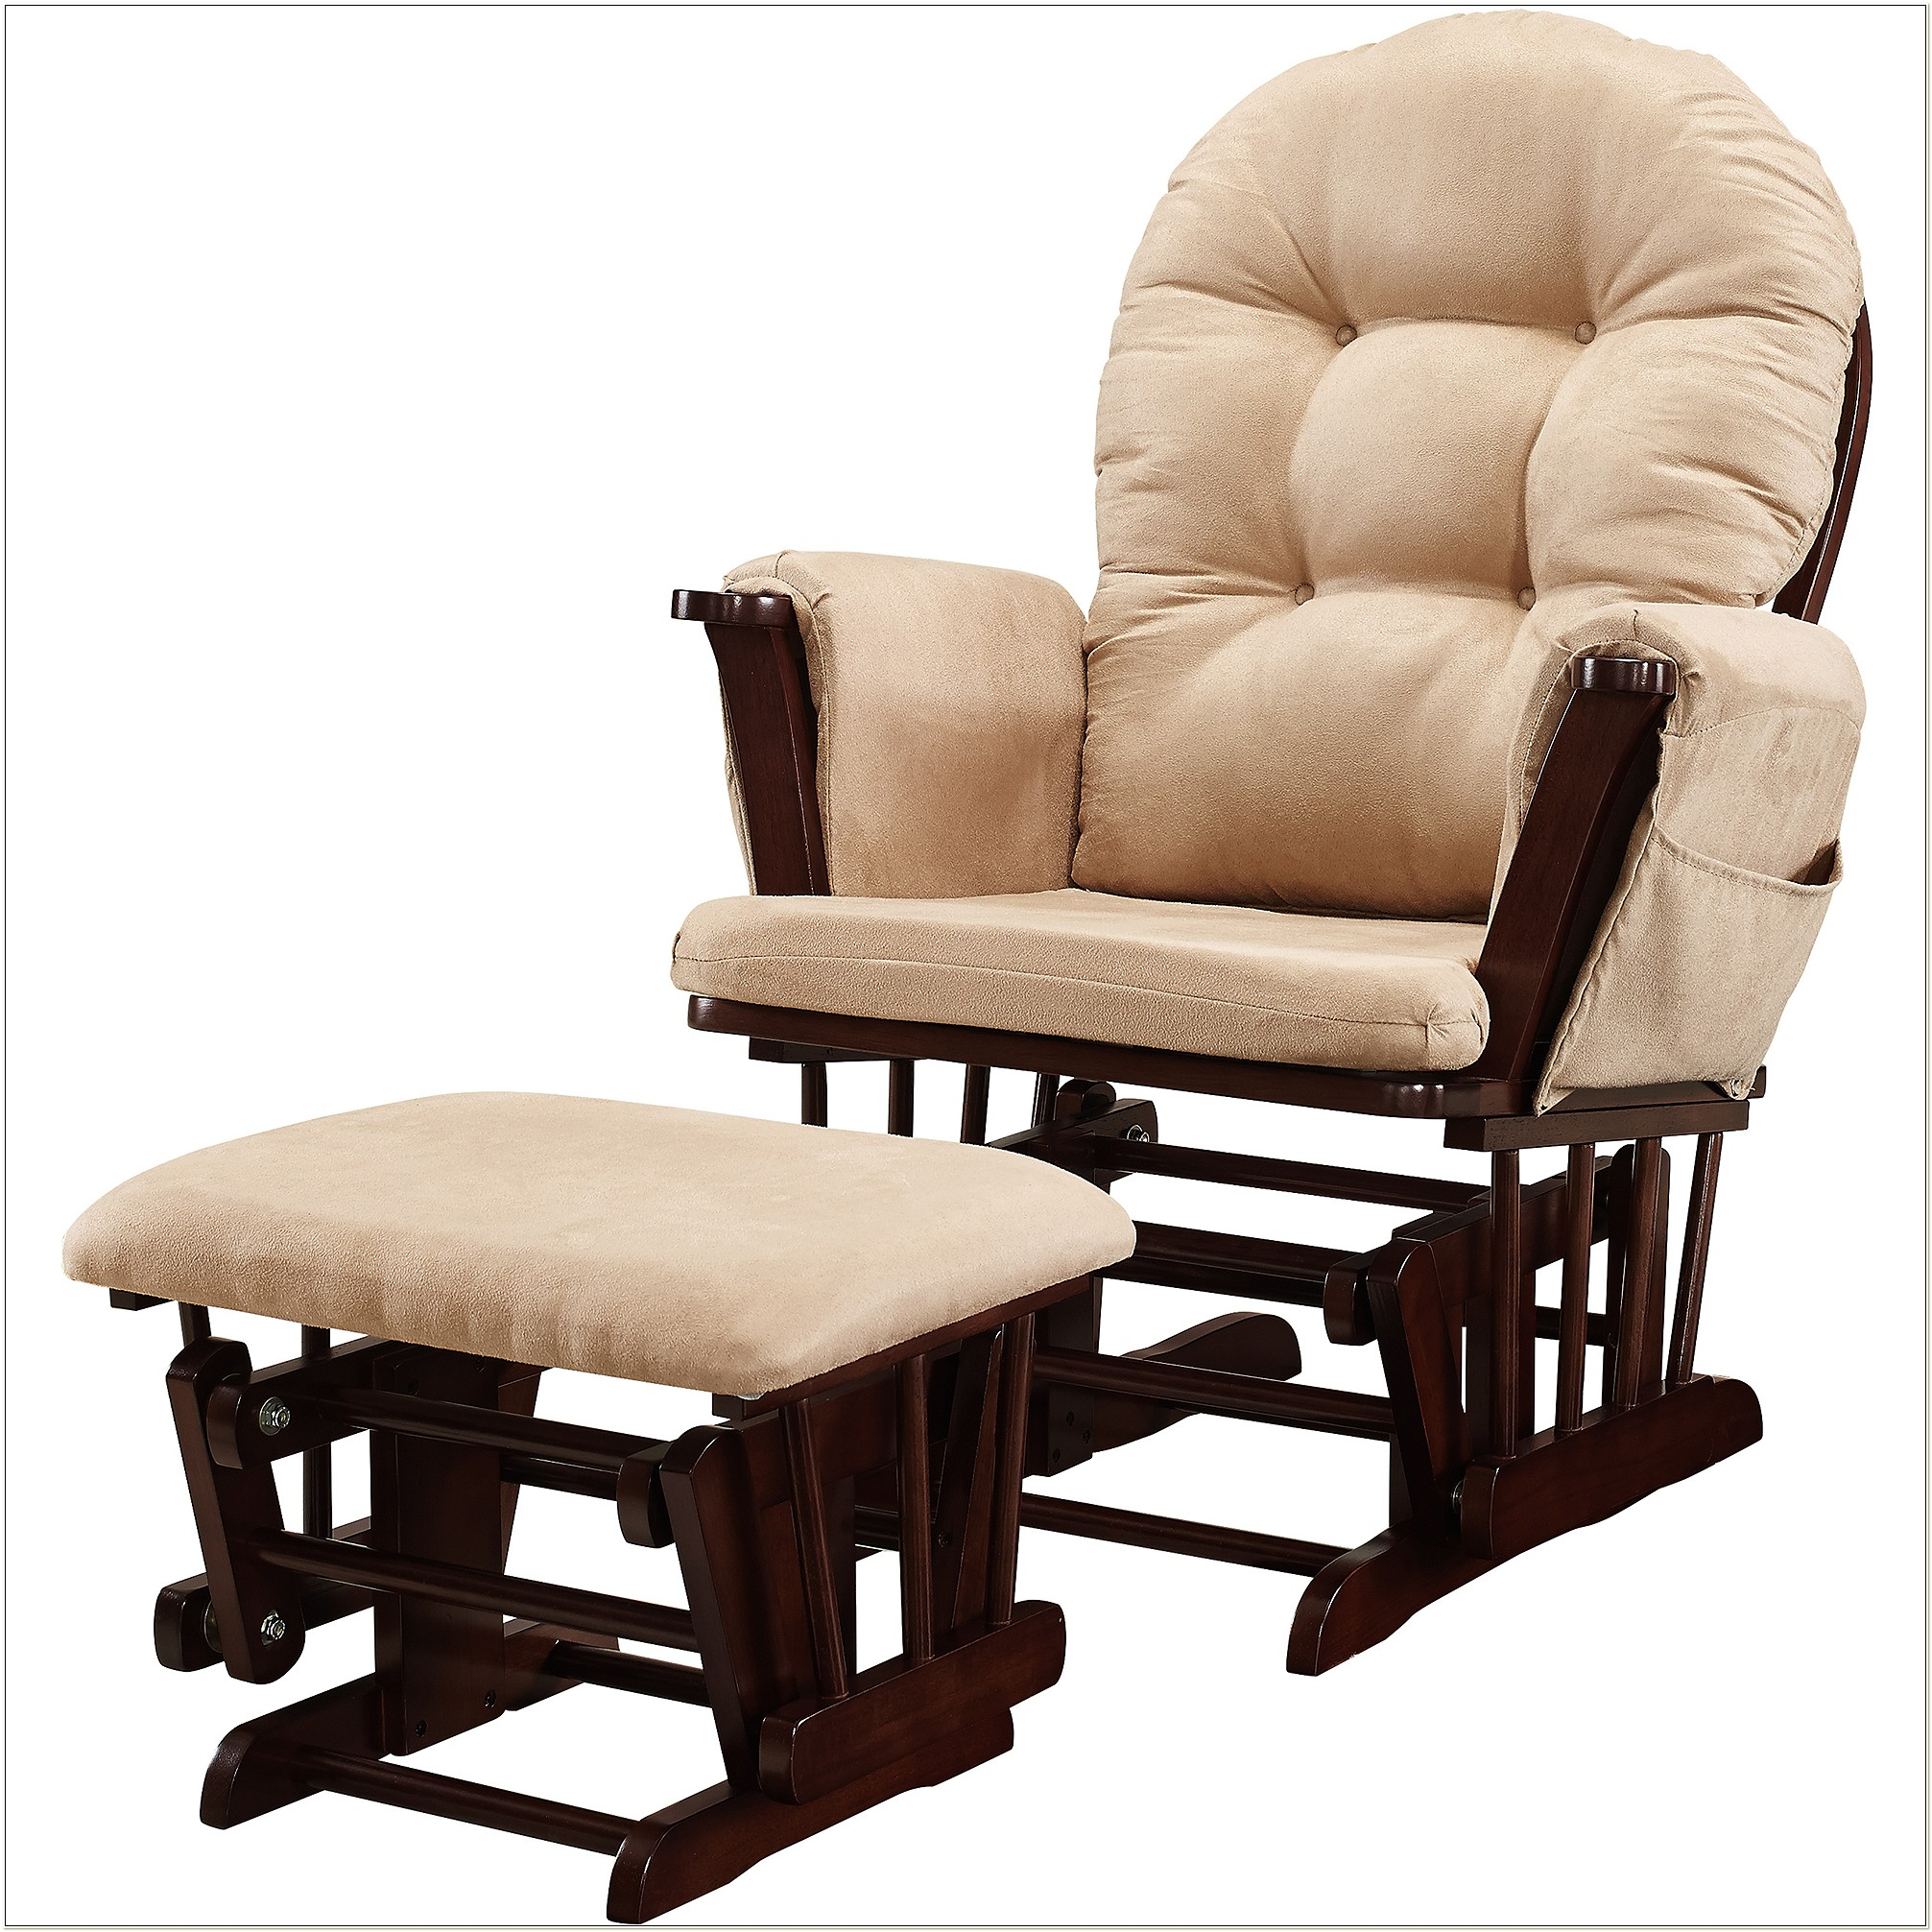 Glider Rockers And Ottoman Sets